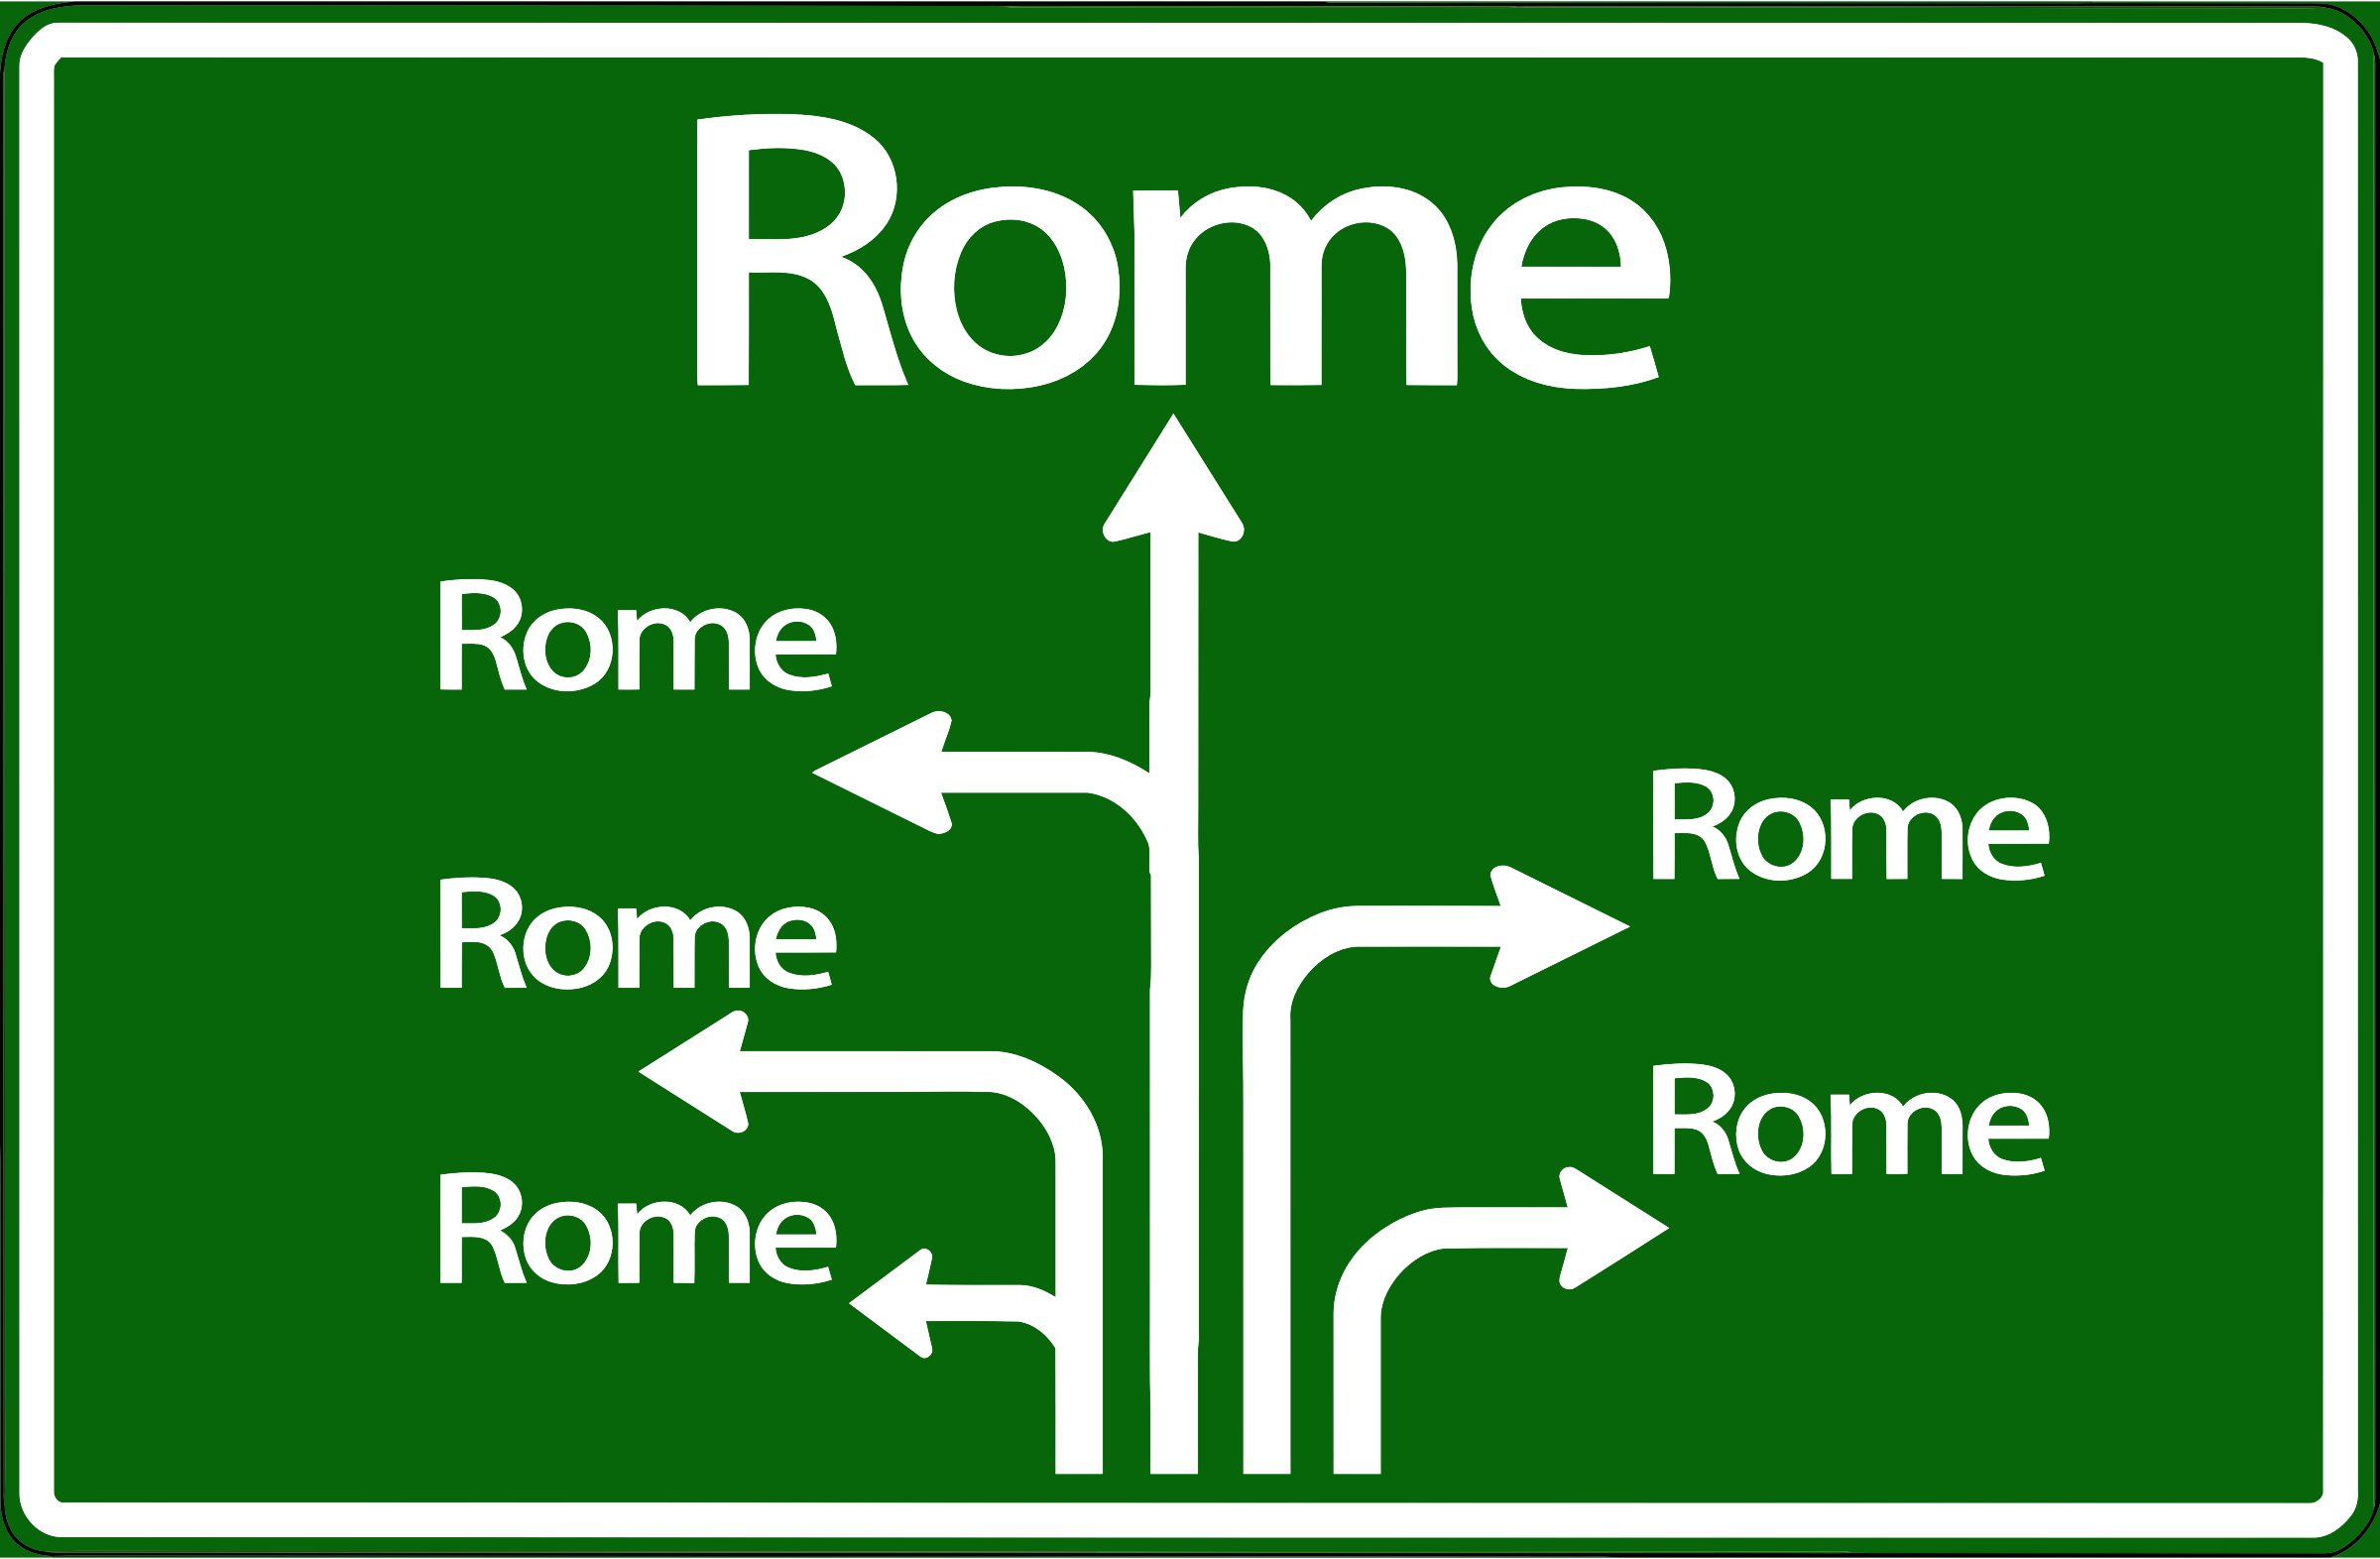 All Roads Lead To Rome by GDJ